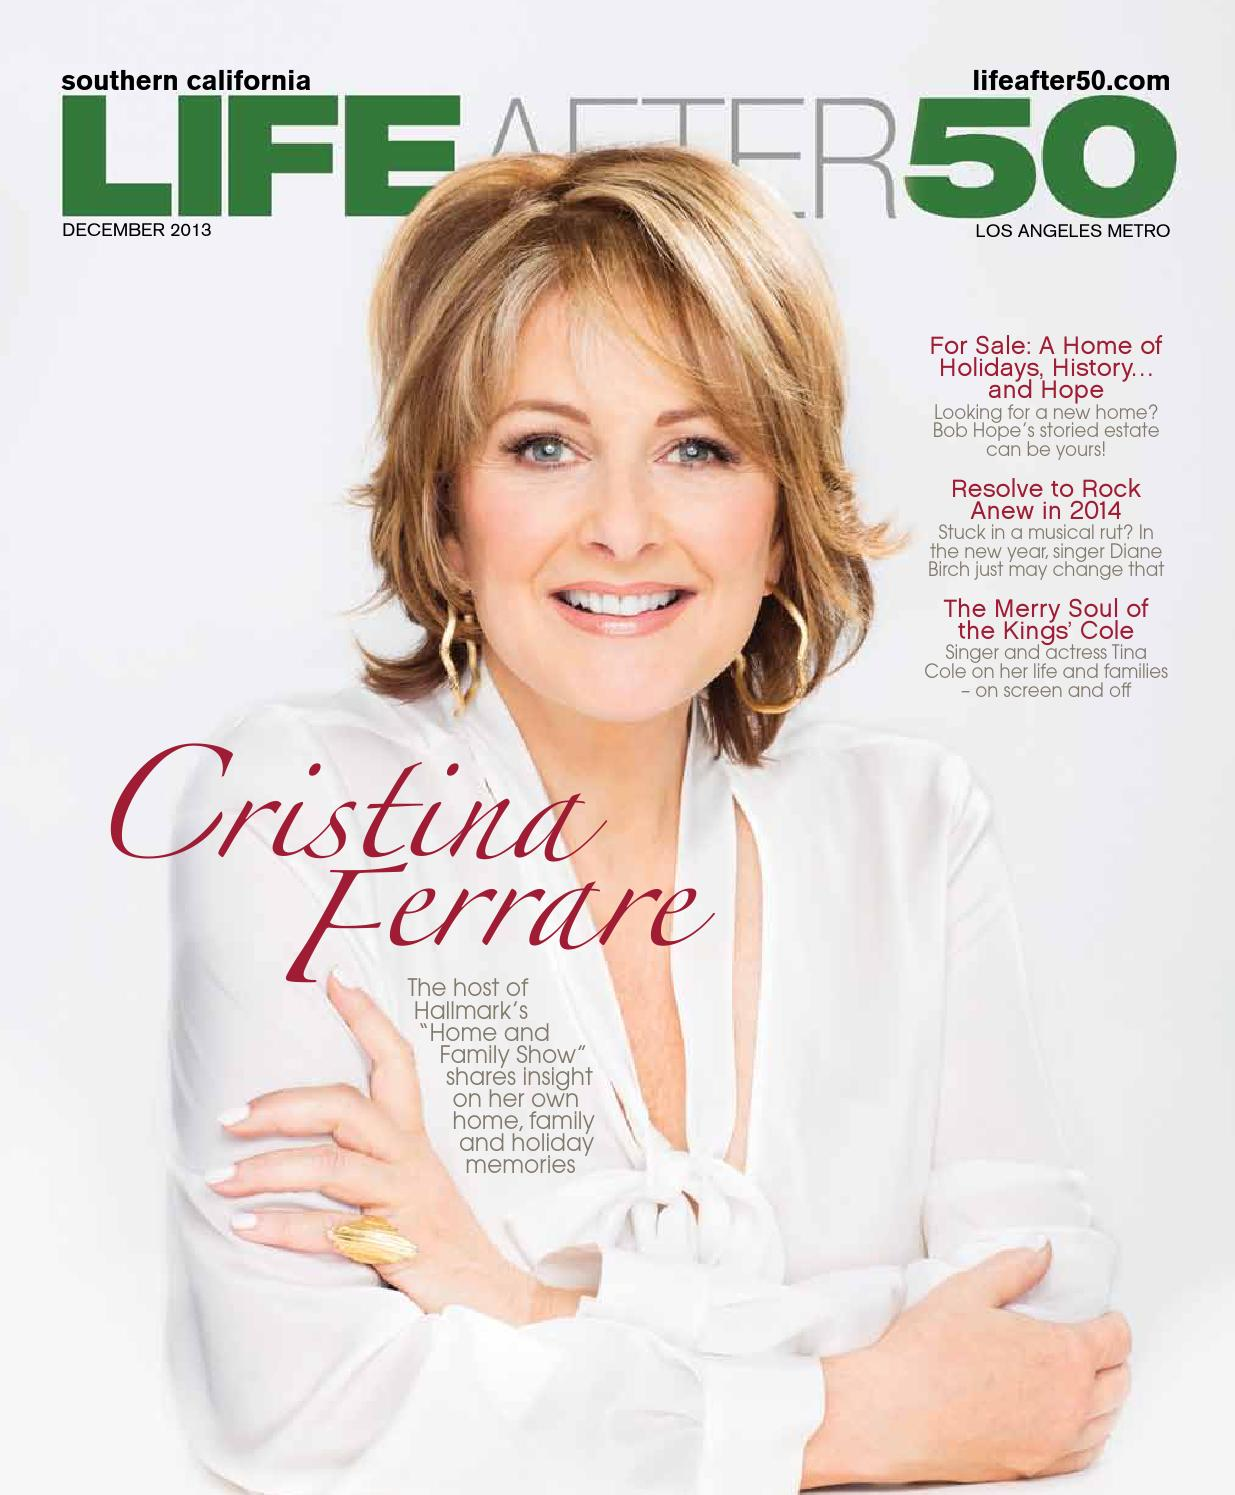 Christina ferrare hairstyle products used - Christina Ferrare Hairstyle Products Used 5